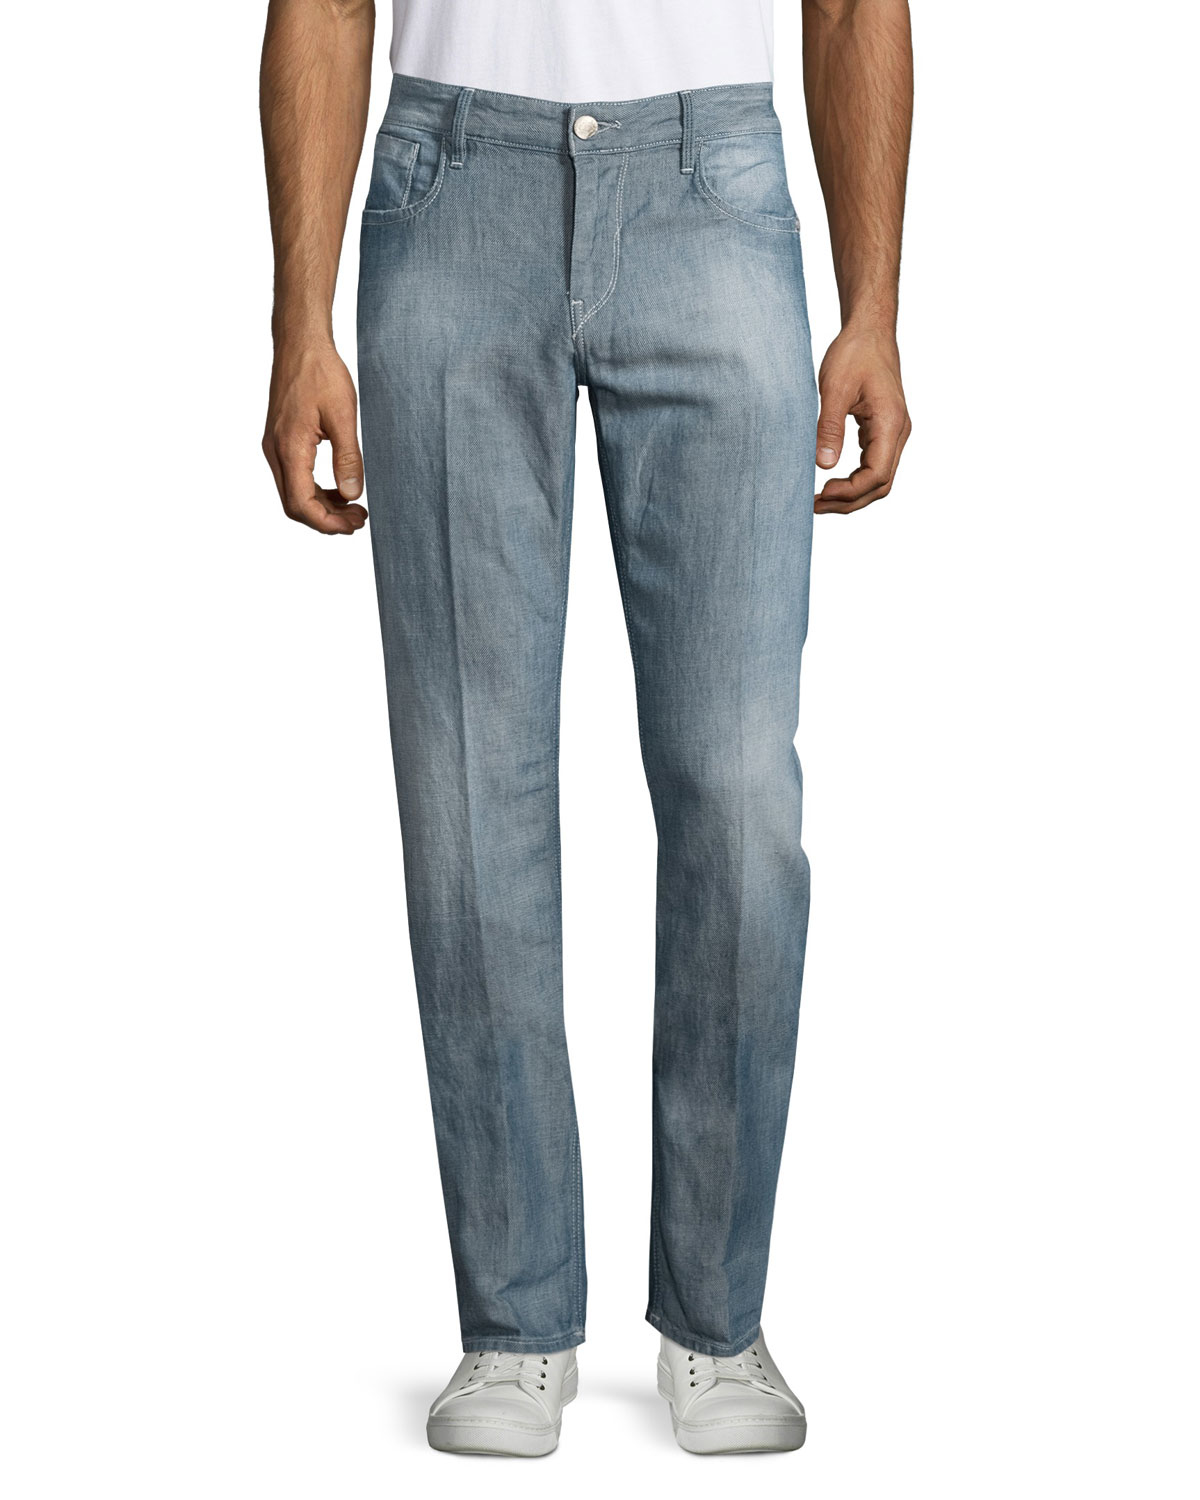 Faded Skinny Jeans Men